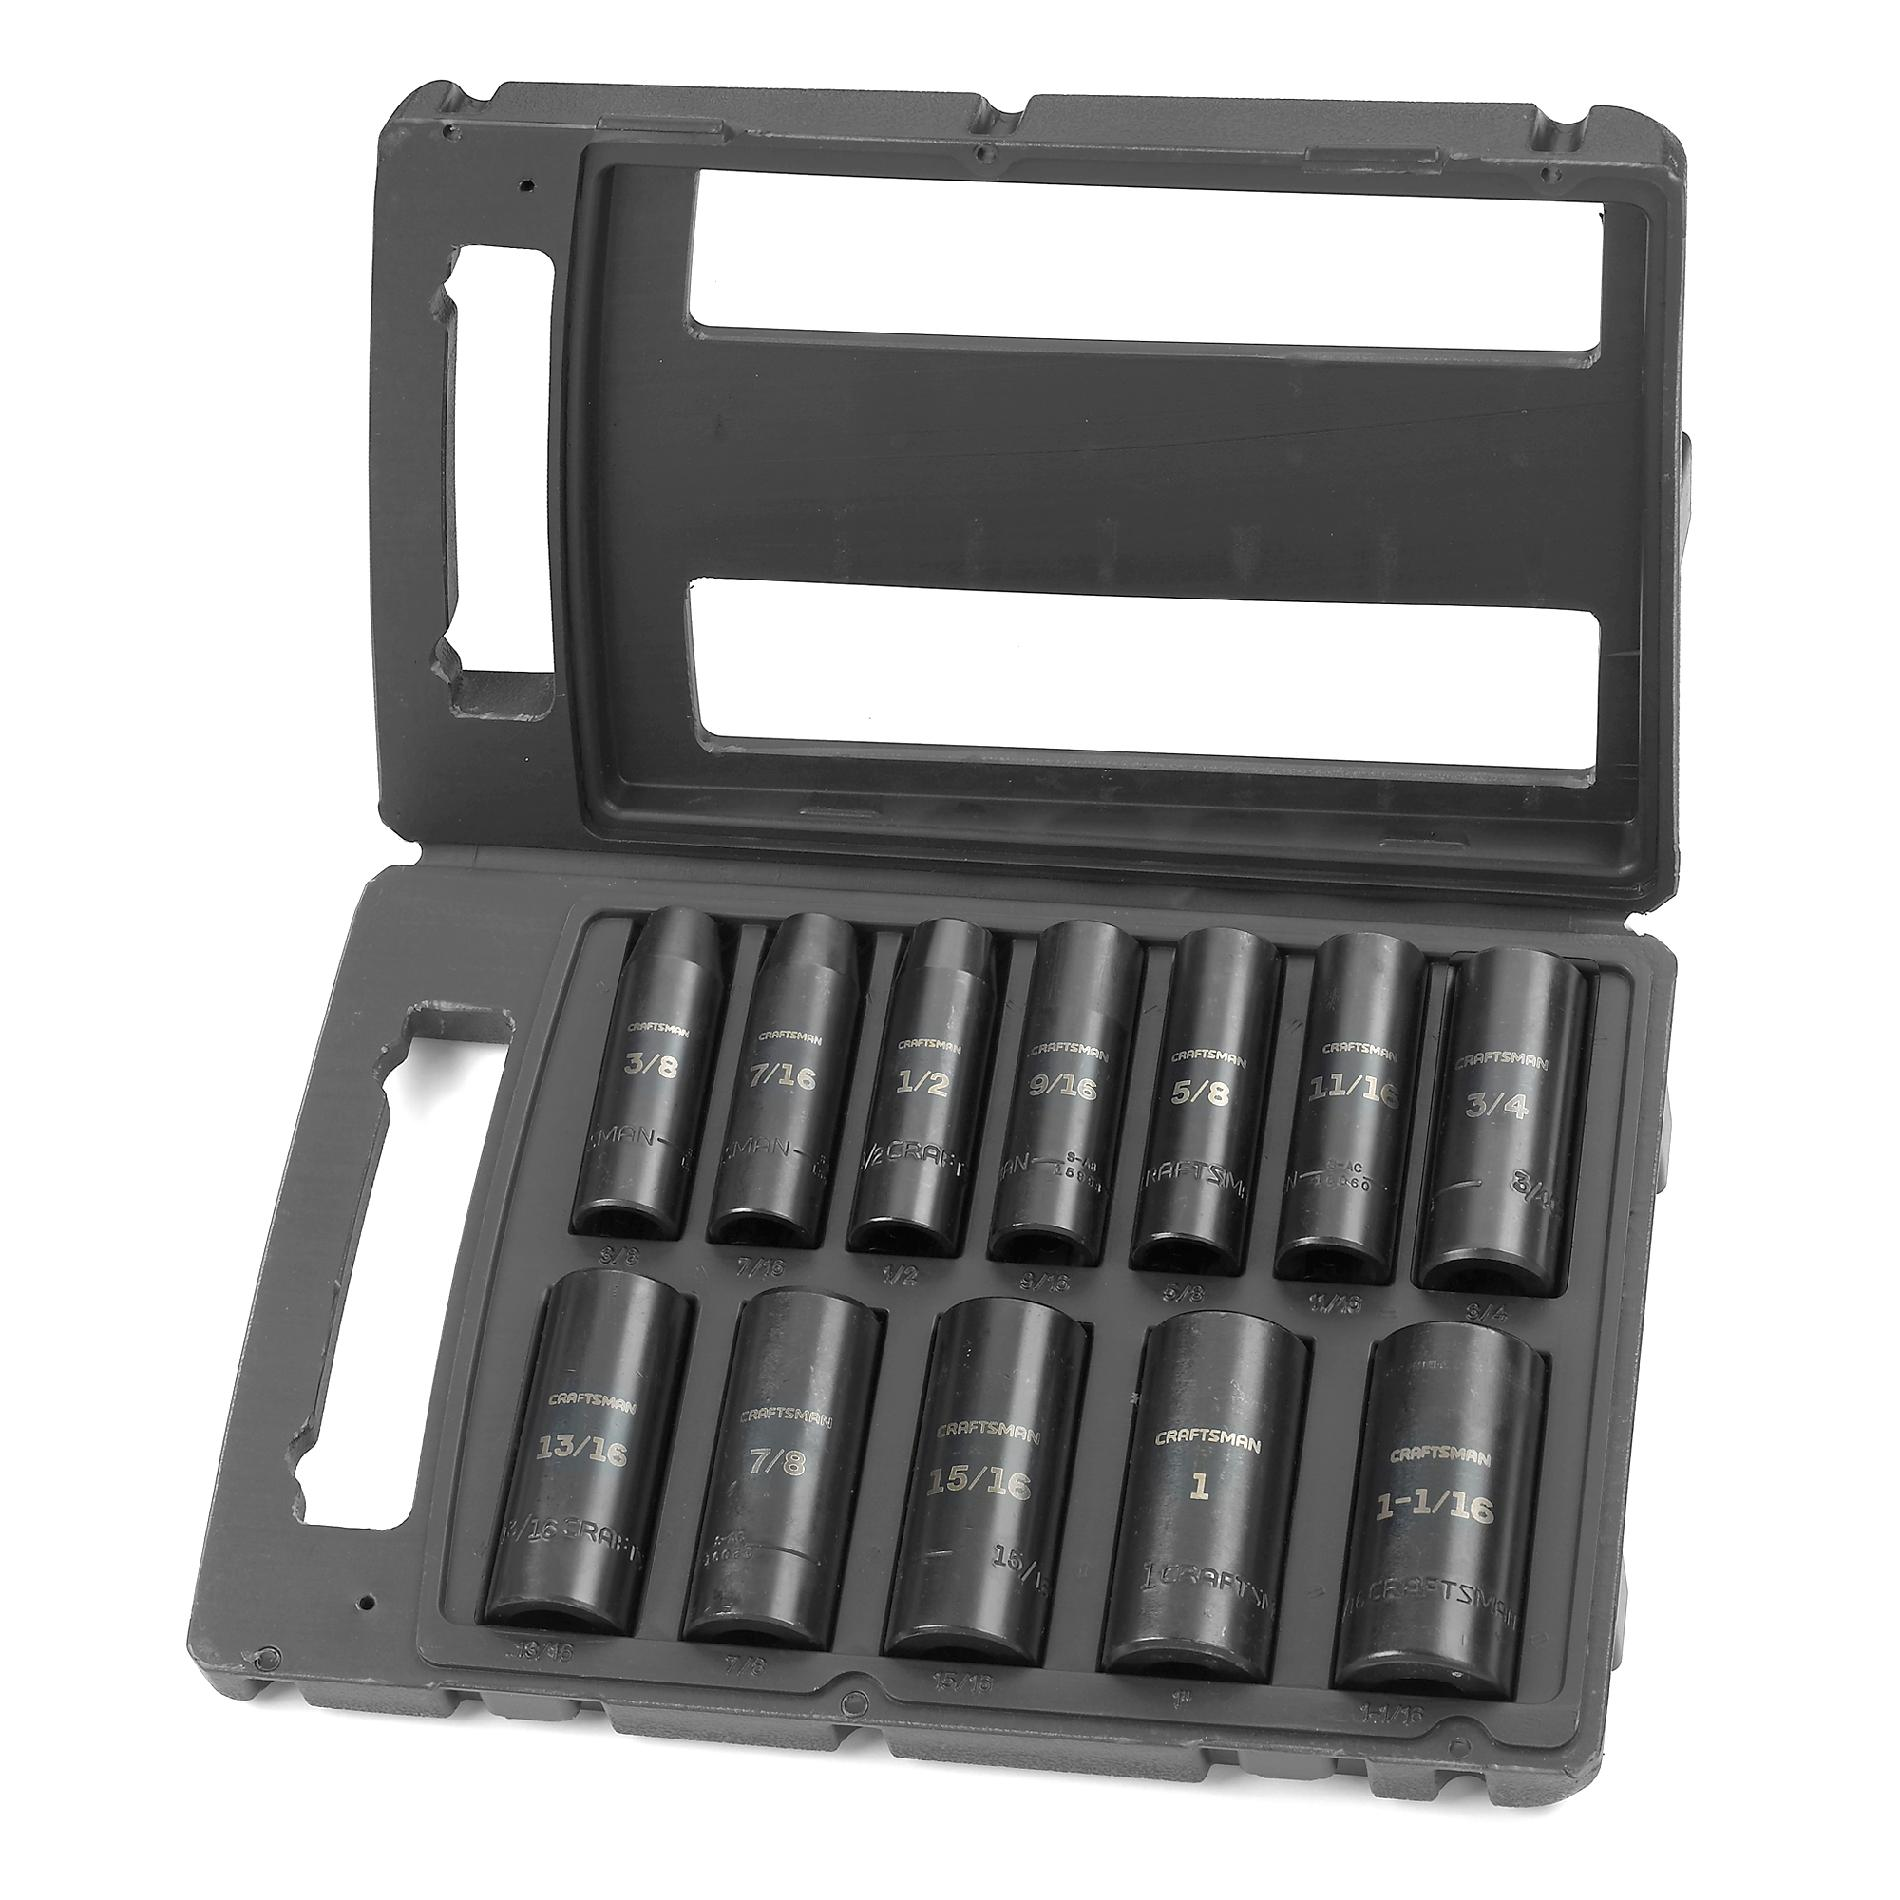 Craftsman 12 pc. Standard Easy to Read Impact Socket Set, 6 pt. Deep, 1/2 in. Drive